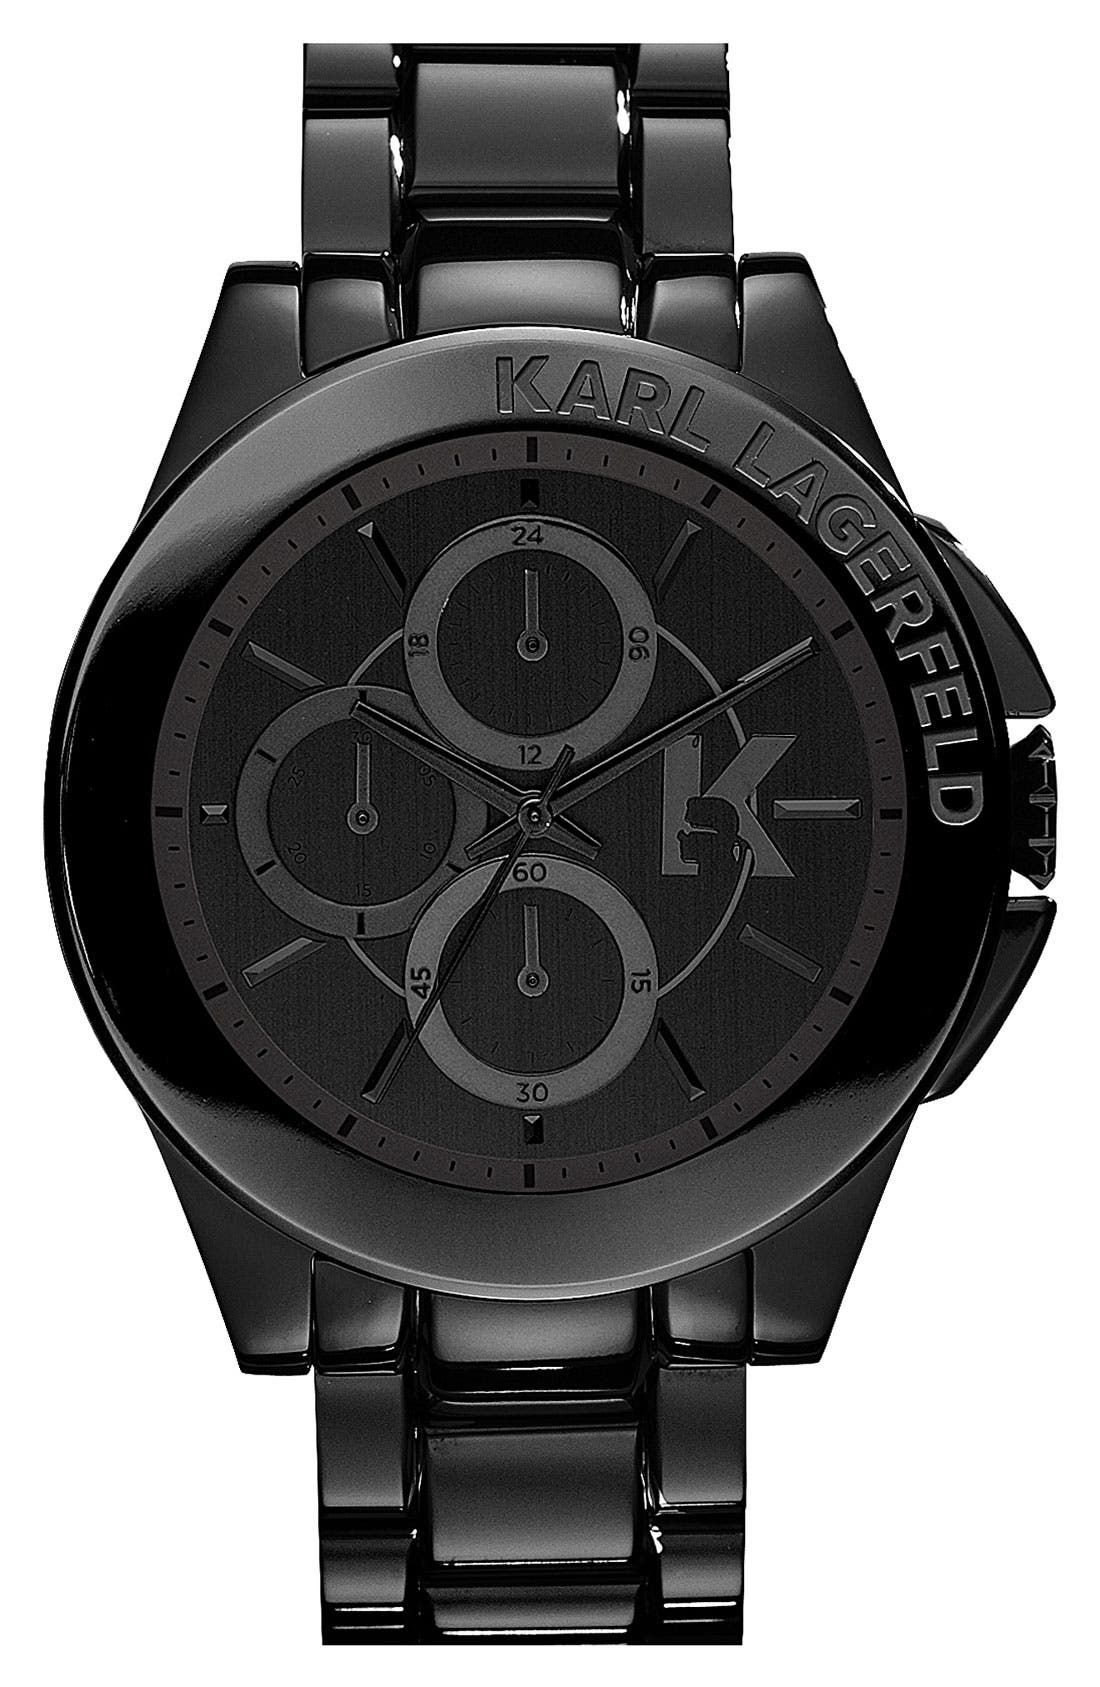 Main Image - KARL LAGERFELD 'Energy' Chronograph Bracelet Watch, 44mm